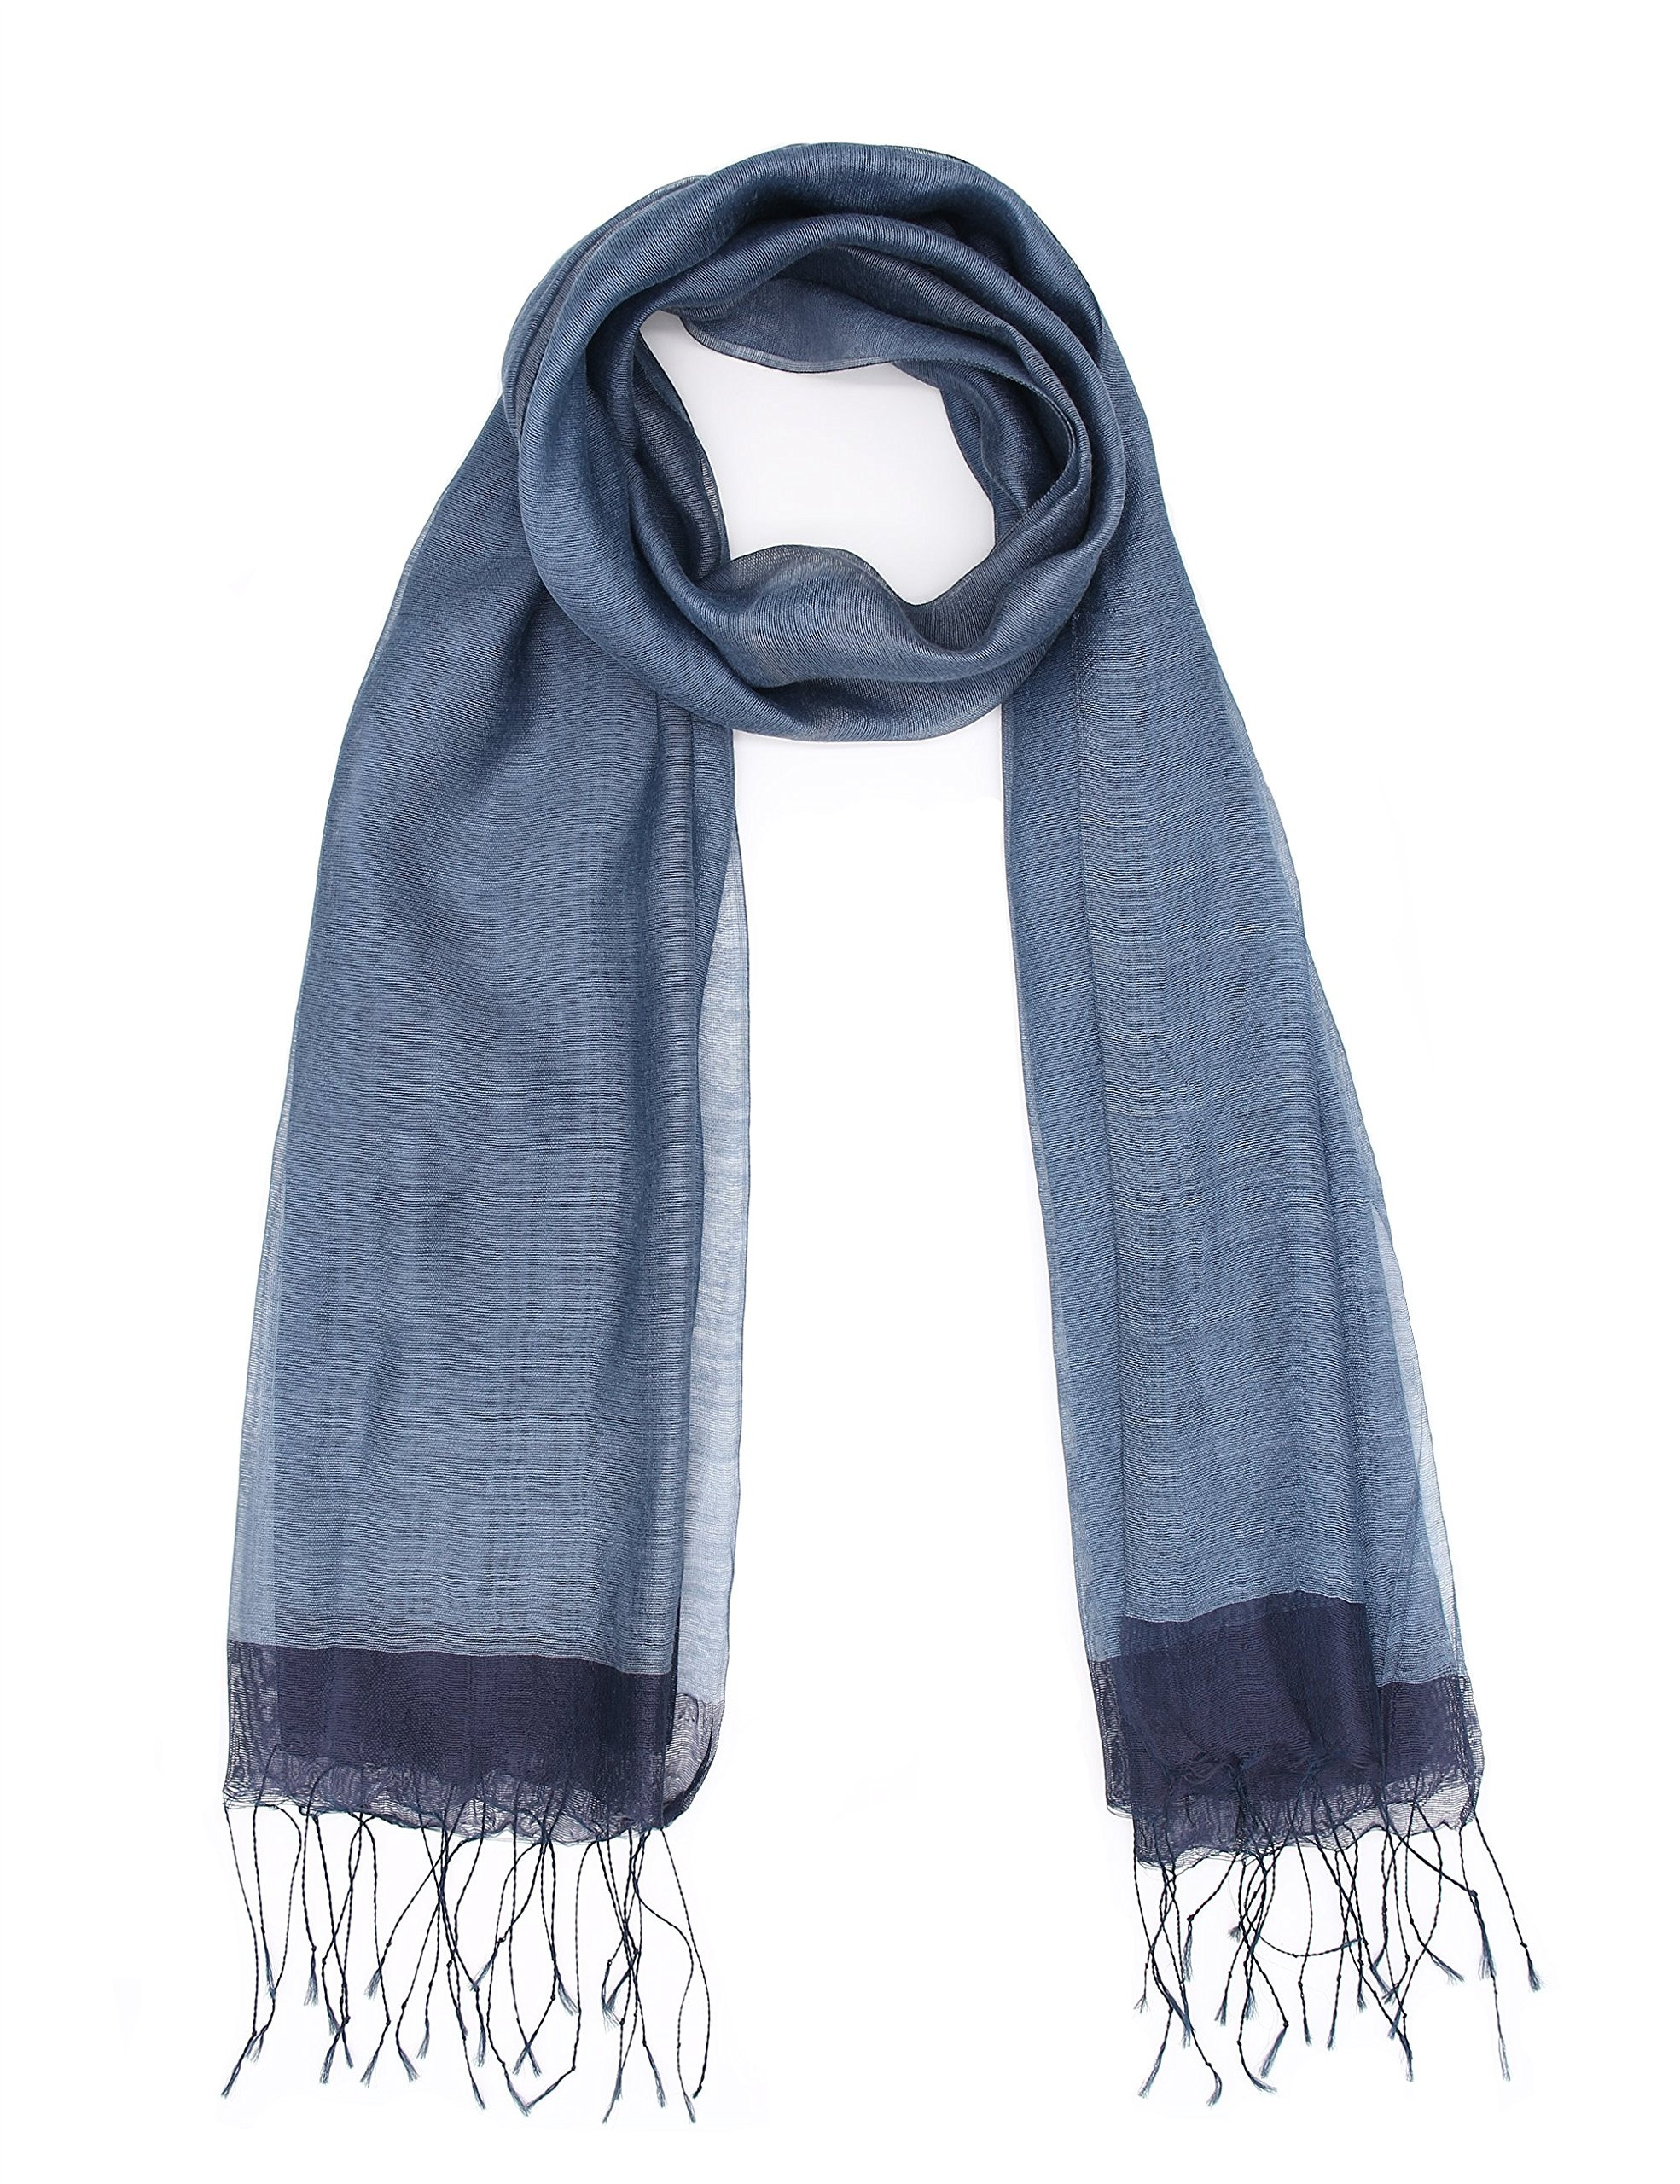 Navy Sheer Silk Scarf For Women Lager Shawl Wrap For Evening Dresses Soft Lightweight Sheer Voile Viscose Scarf With Fringes By J'Mysticon